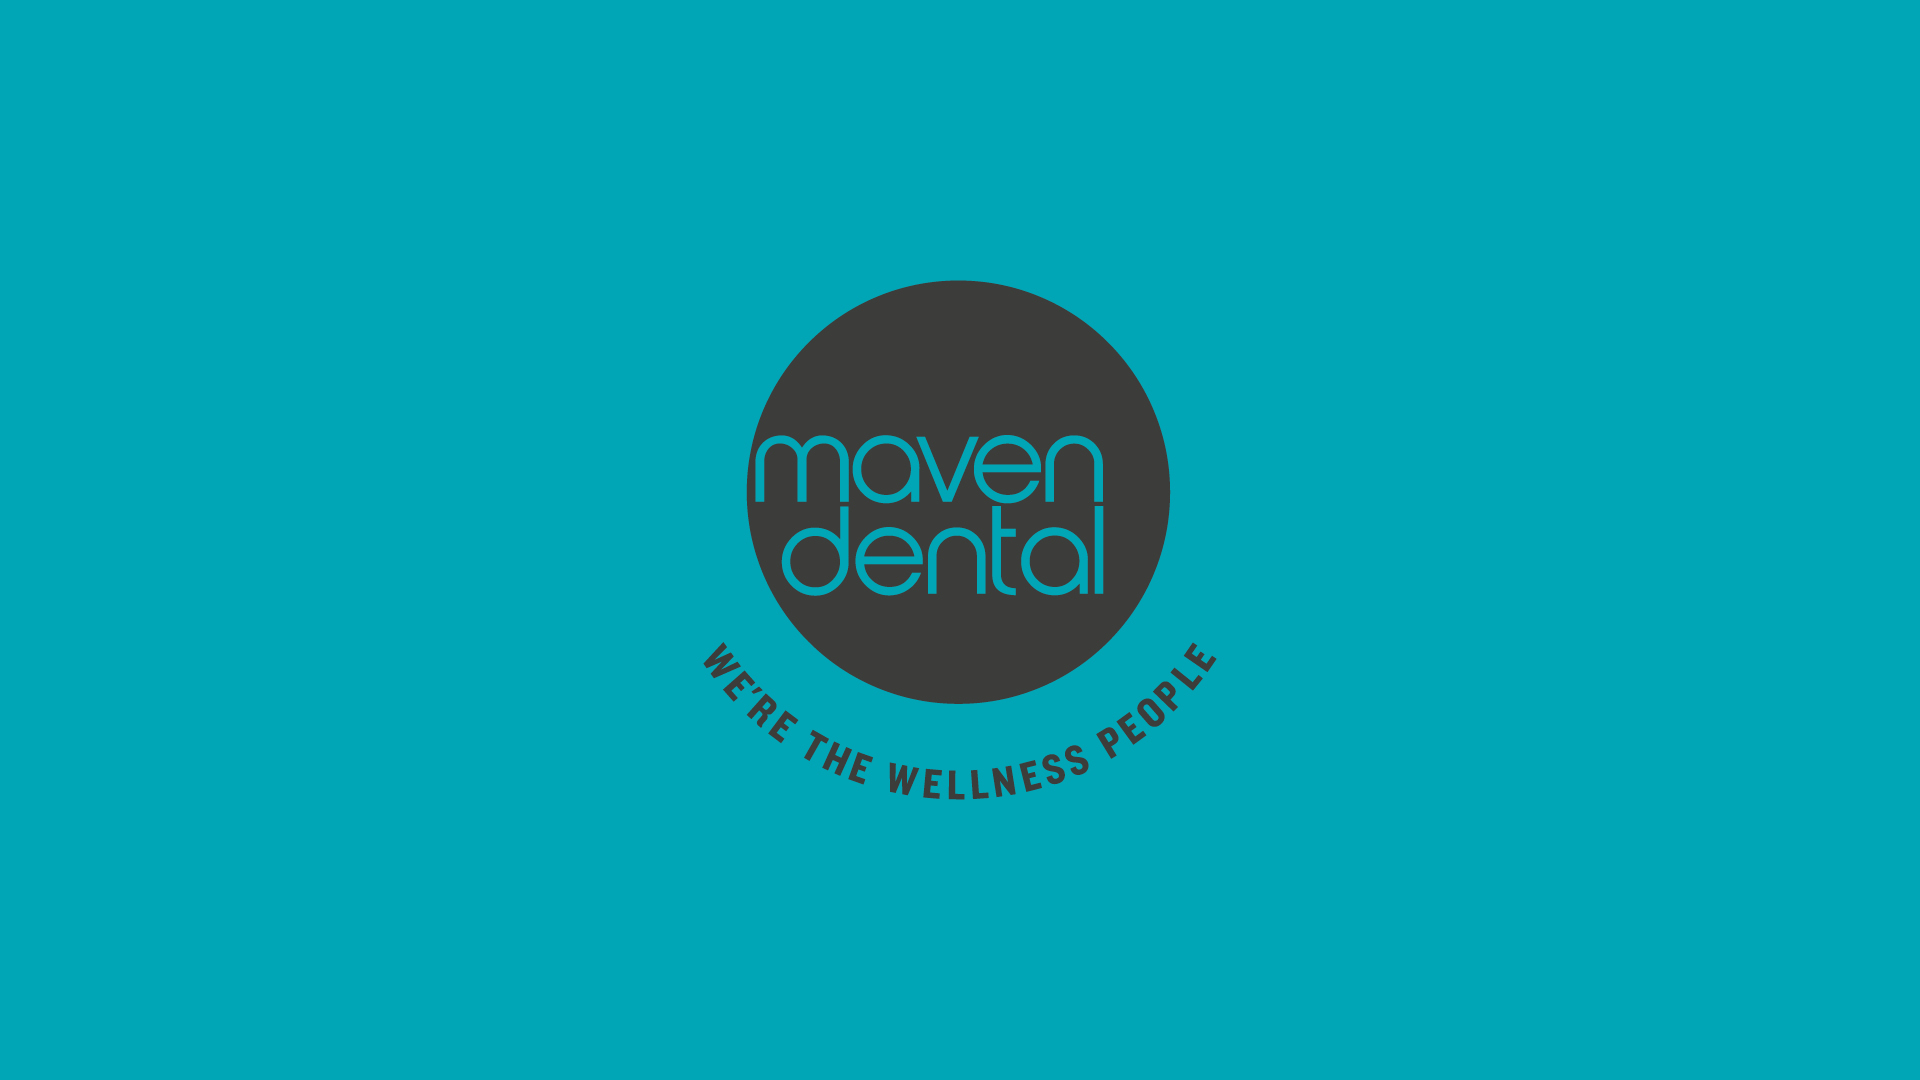 Tribal Worldwide New Zealand launches new website for Maven Dental in Australia